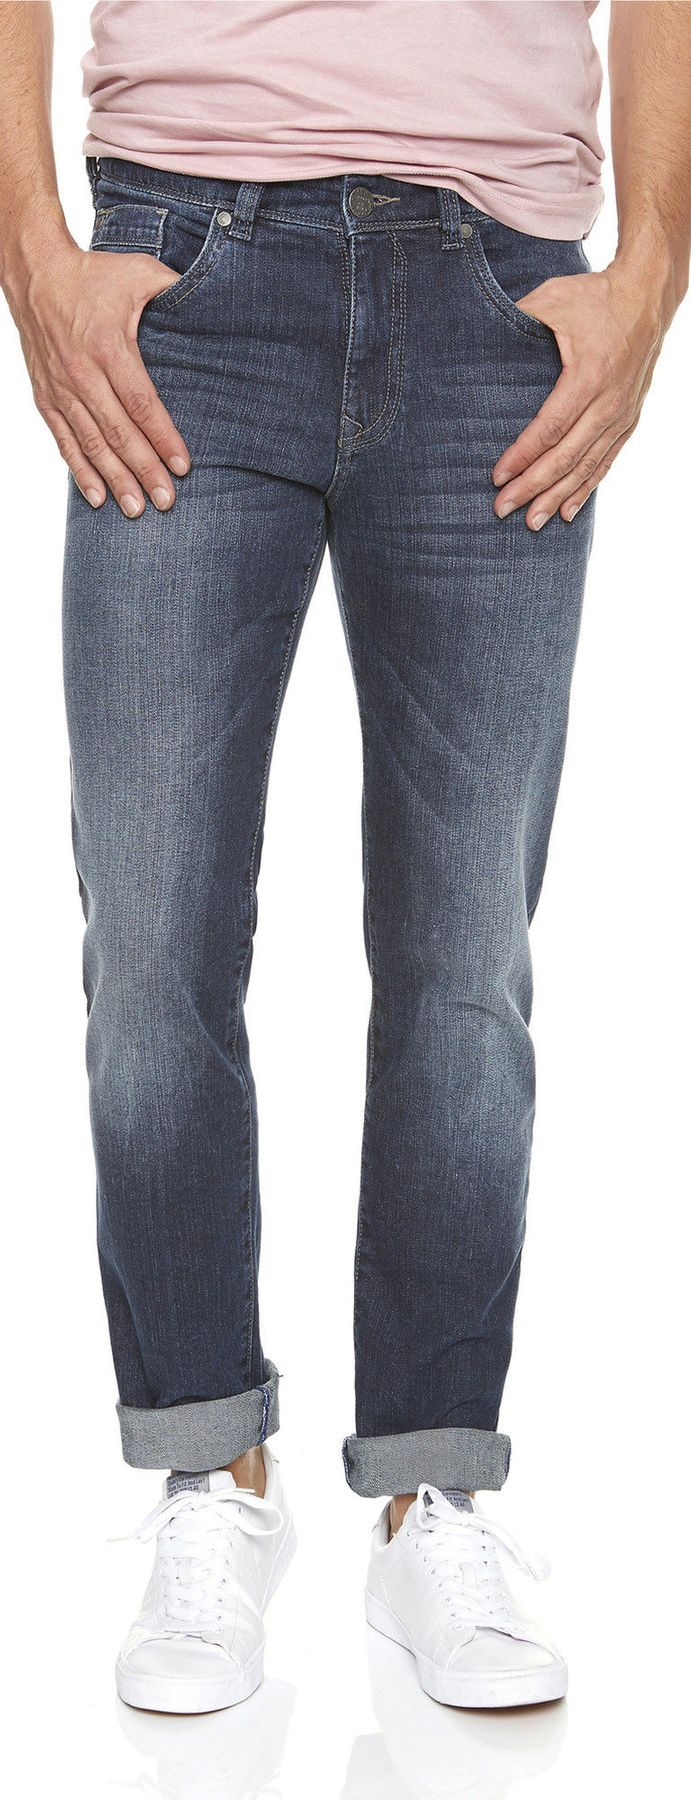 Atelier Gardeur - Regular Fit - Herren 5-Pocket Jeans in Dark Stone, Nevio (71080)